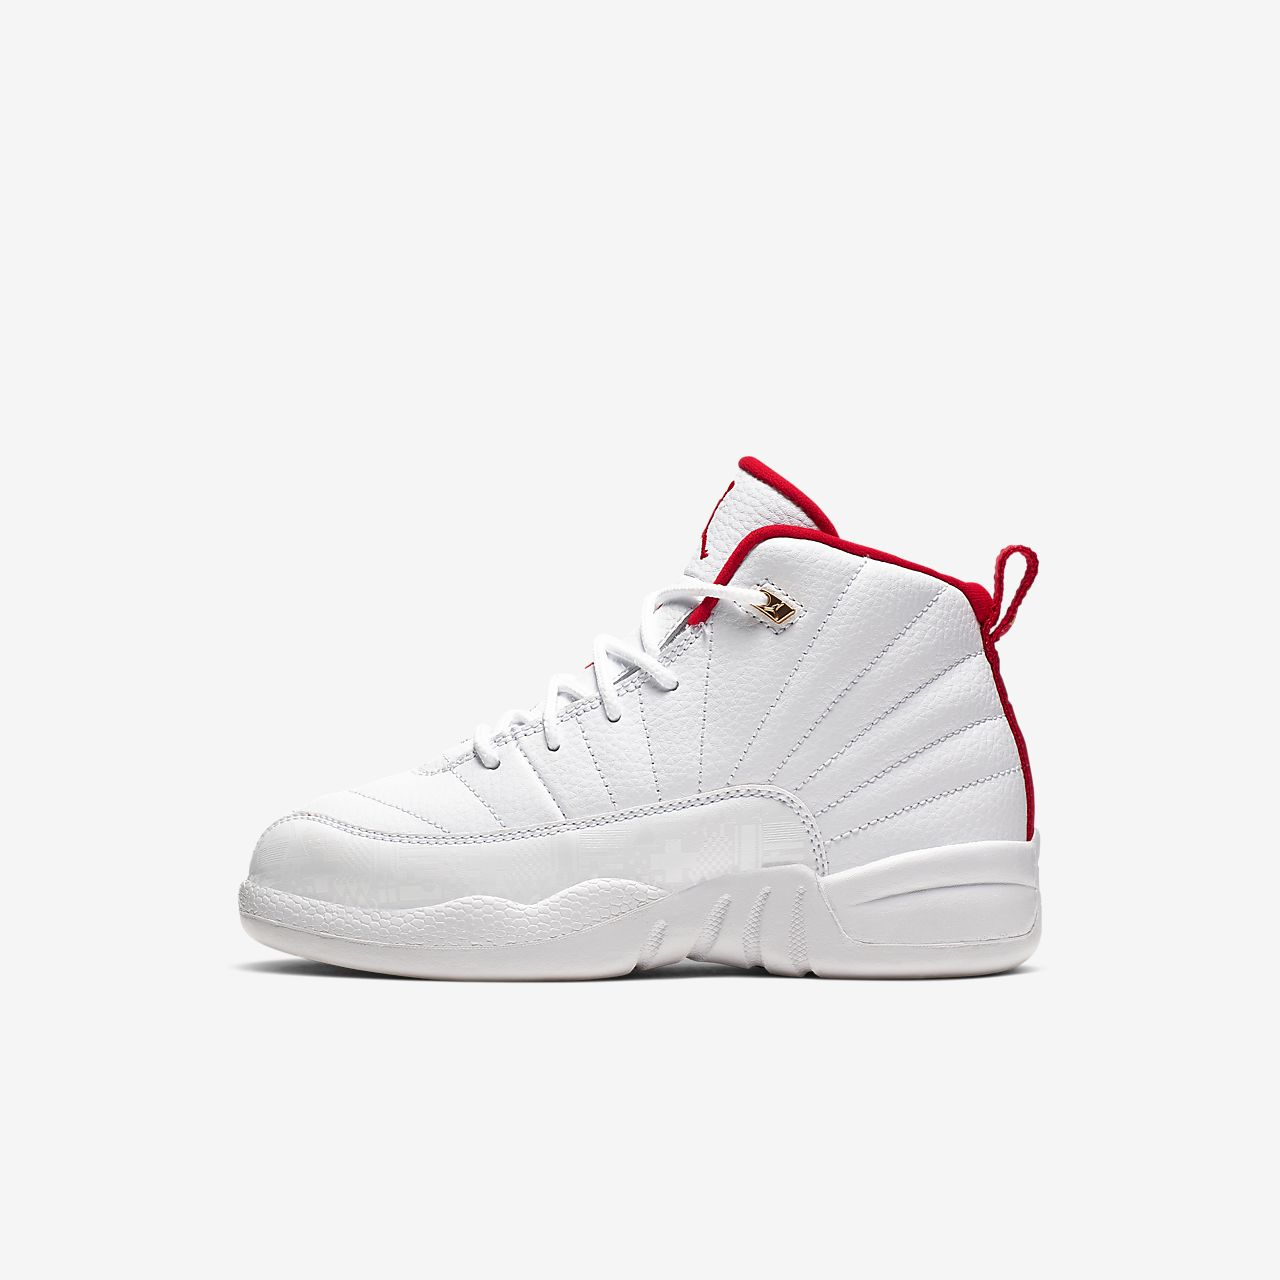 premium selection 39a39 801cb Air Jordan 12 Retro (10.5c-3y) Little Kids' Shoe